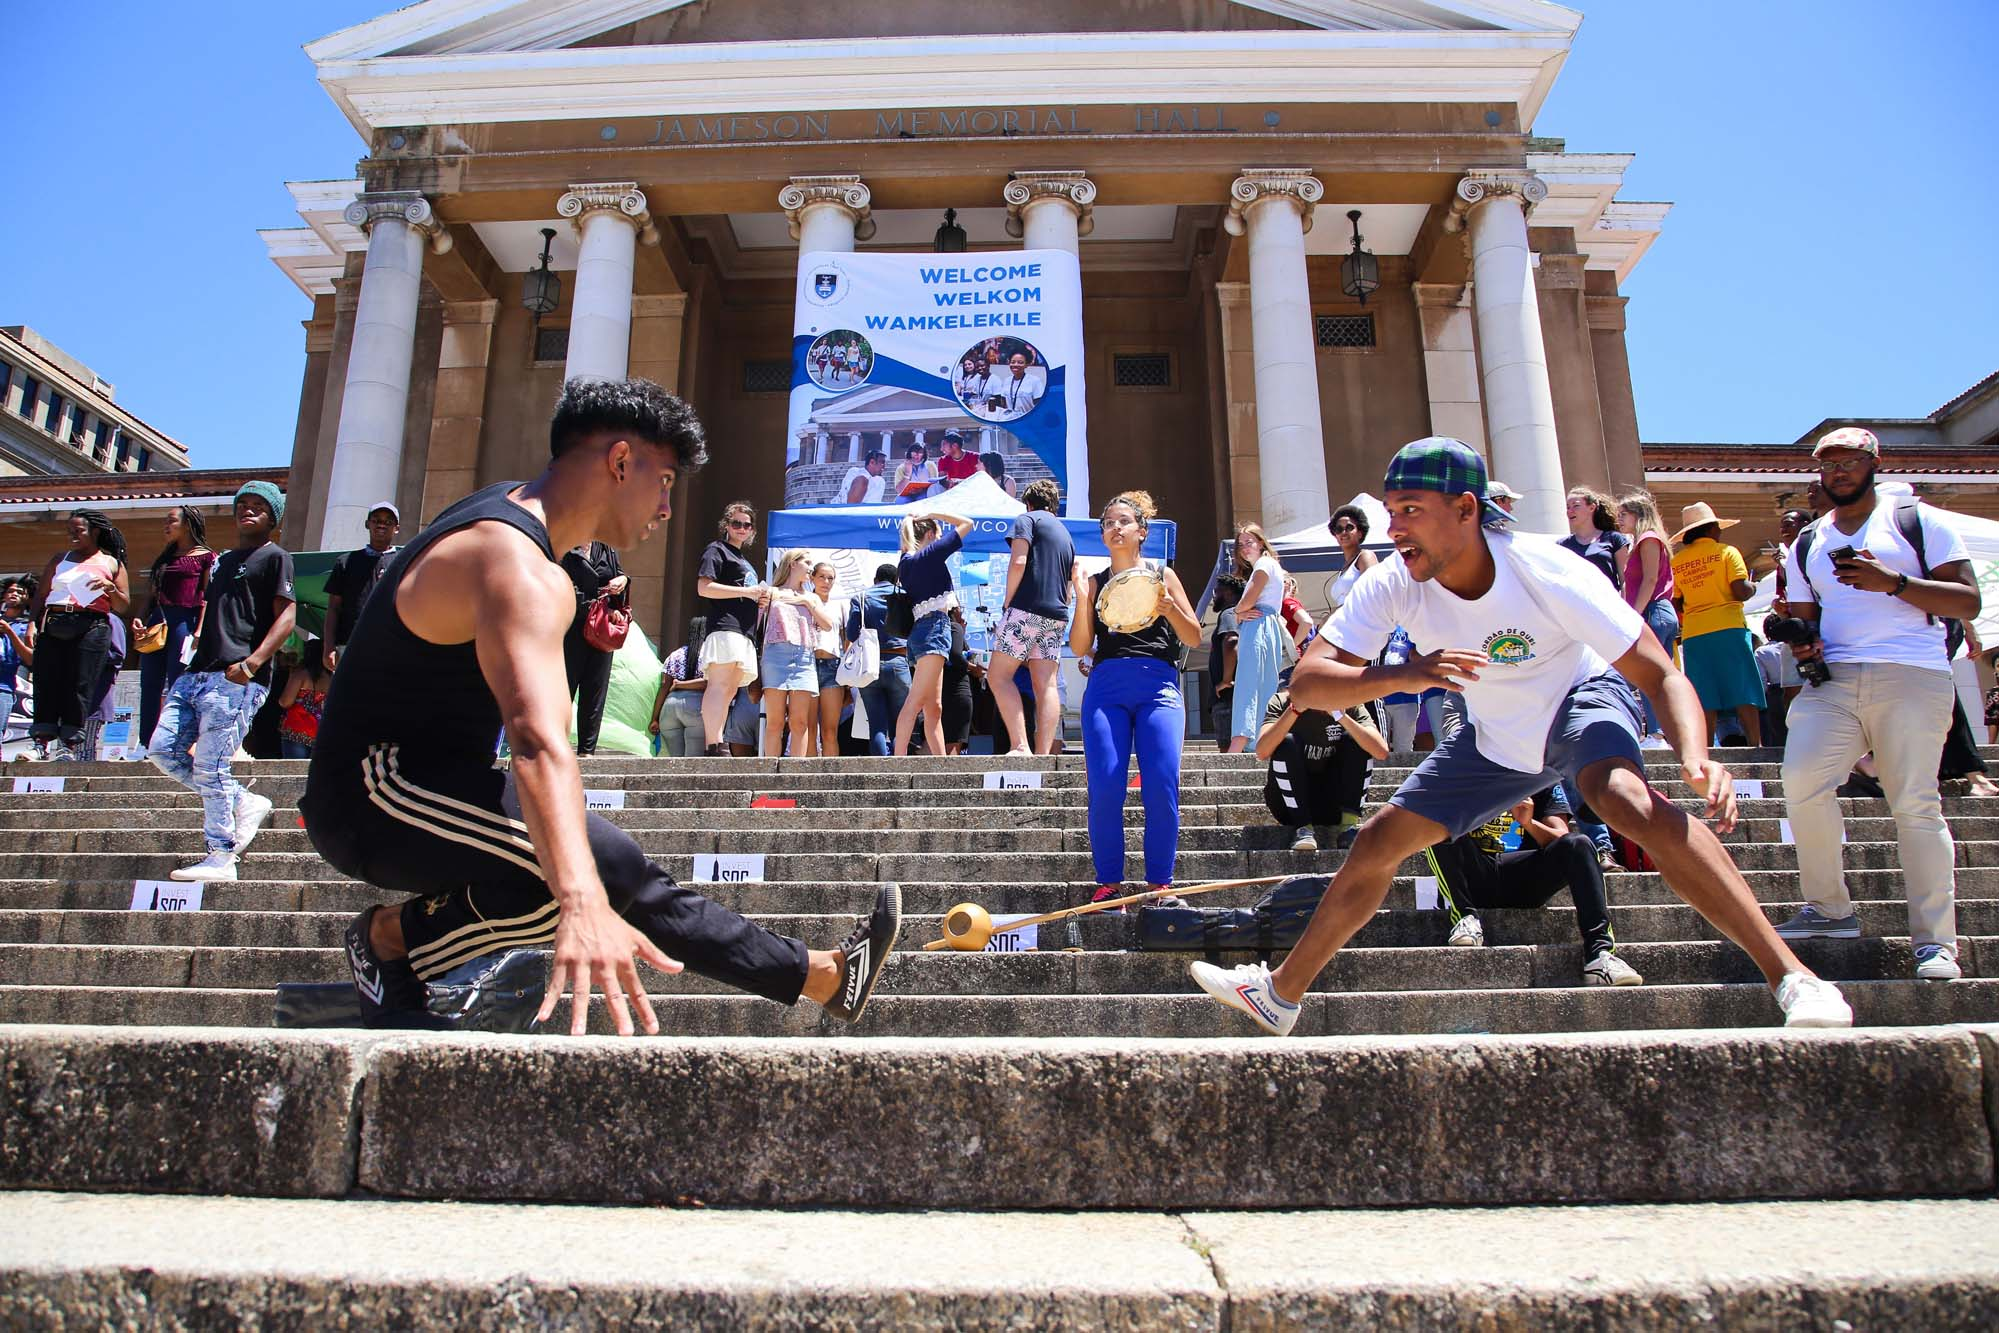 First-year students spent three days enjoying Plaza Week, when UCT's clubs and societies set up camp in front of Sarah Baartman Hall to sign up new members.